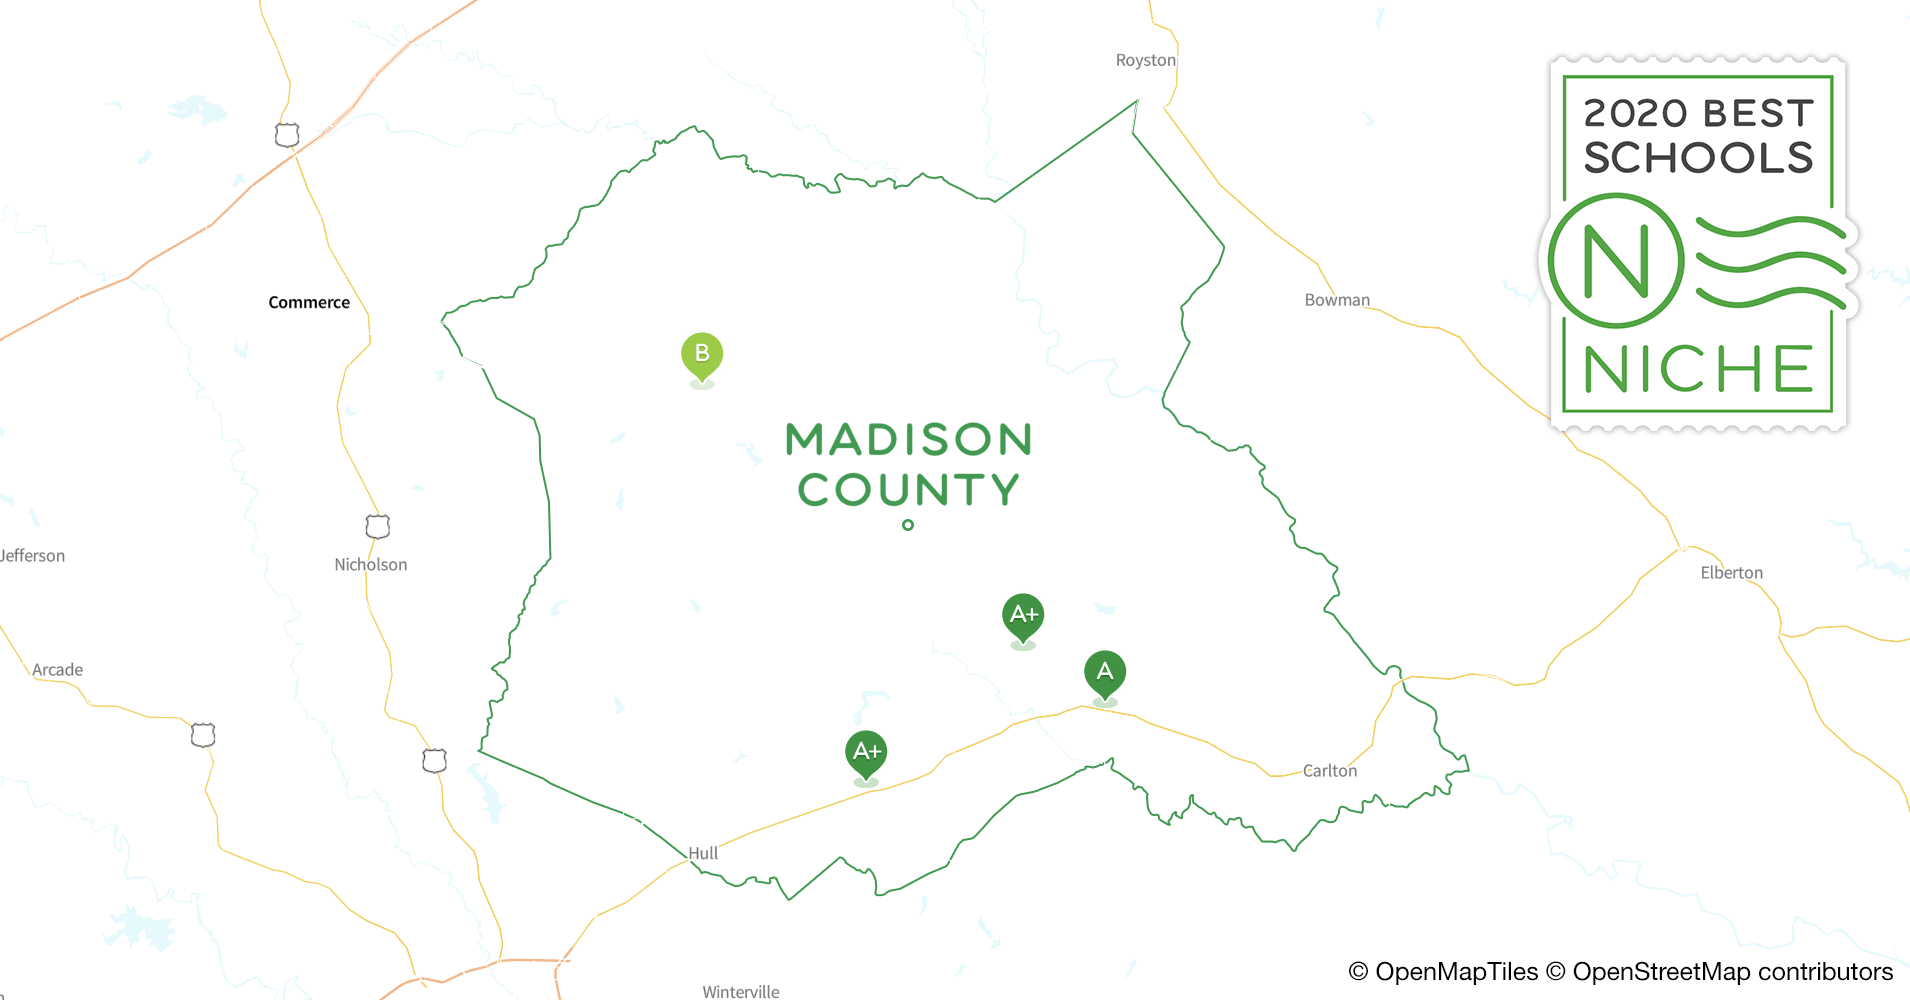 2020 Best Public Elementary s in Madison County, GA ... Madison County Ga Map on barton county ga map, jenkins county ga map, charleston county ga map, social circle county ga map, eden county ga map, section ga map, north forsyth ga map, missouri county map, jeff davis county ga map, athens clarke county georgia map, danielsville ga map, hartselle ga map, irwin county ga map, hull ga map, blue mountain ga map, cherokee county georgia gold mine map, grayson county ga map, union county ga map, pierce ga map, madison co ga map,